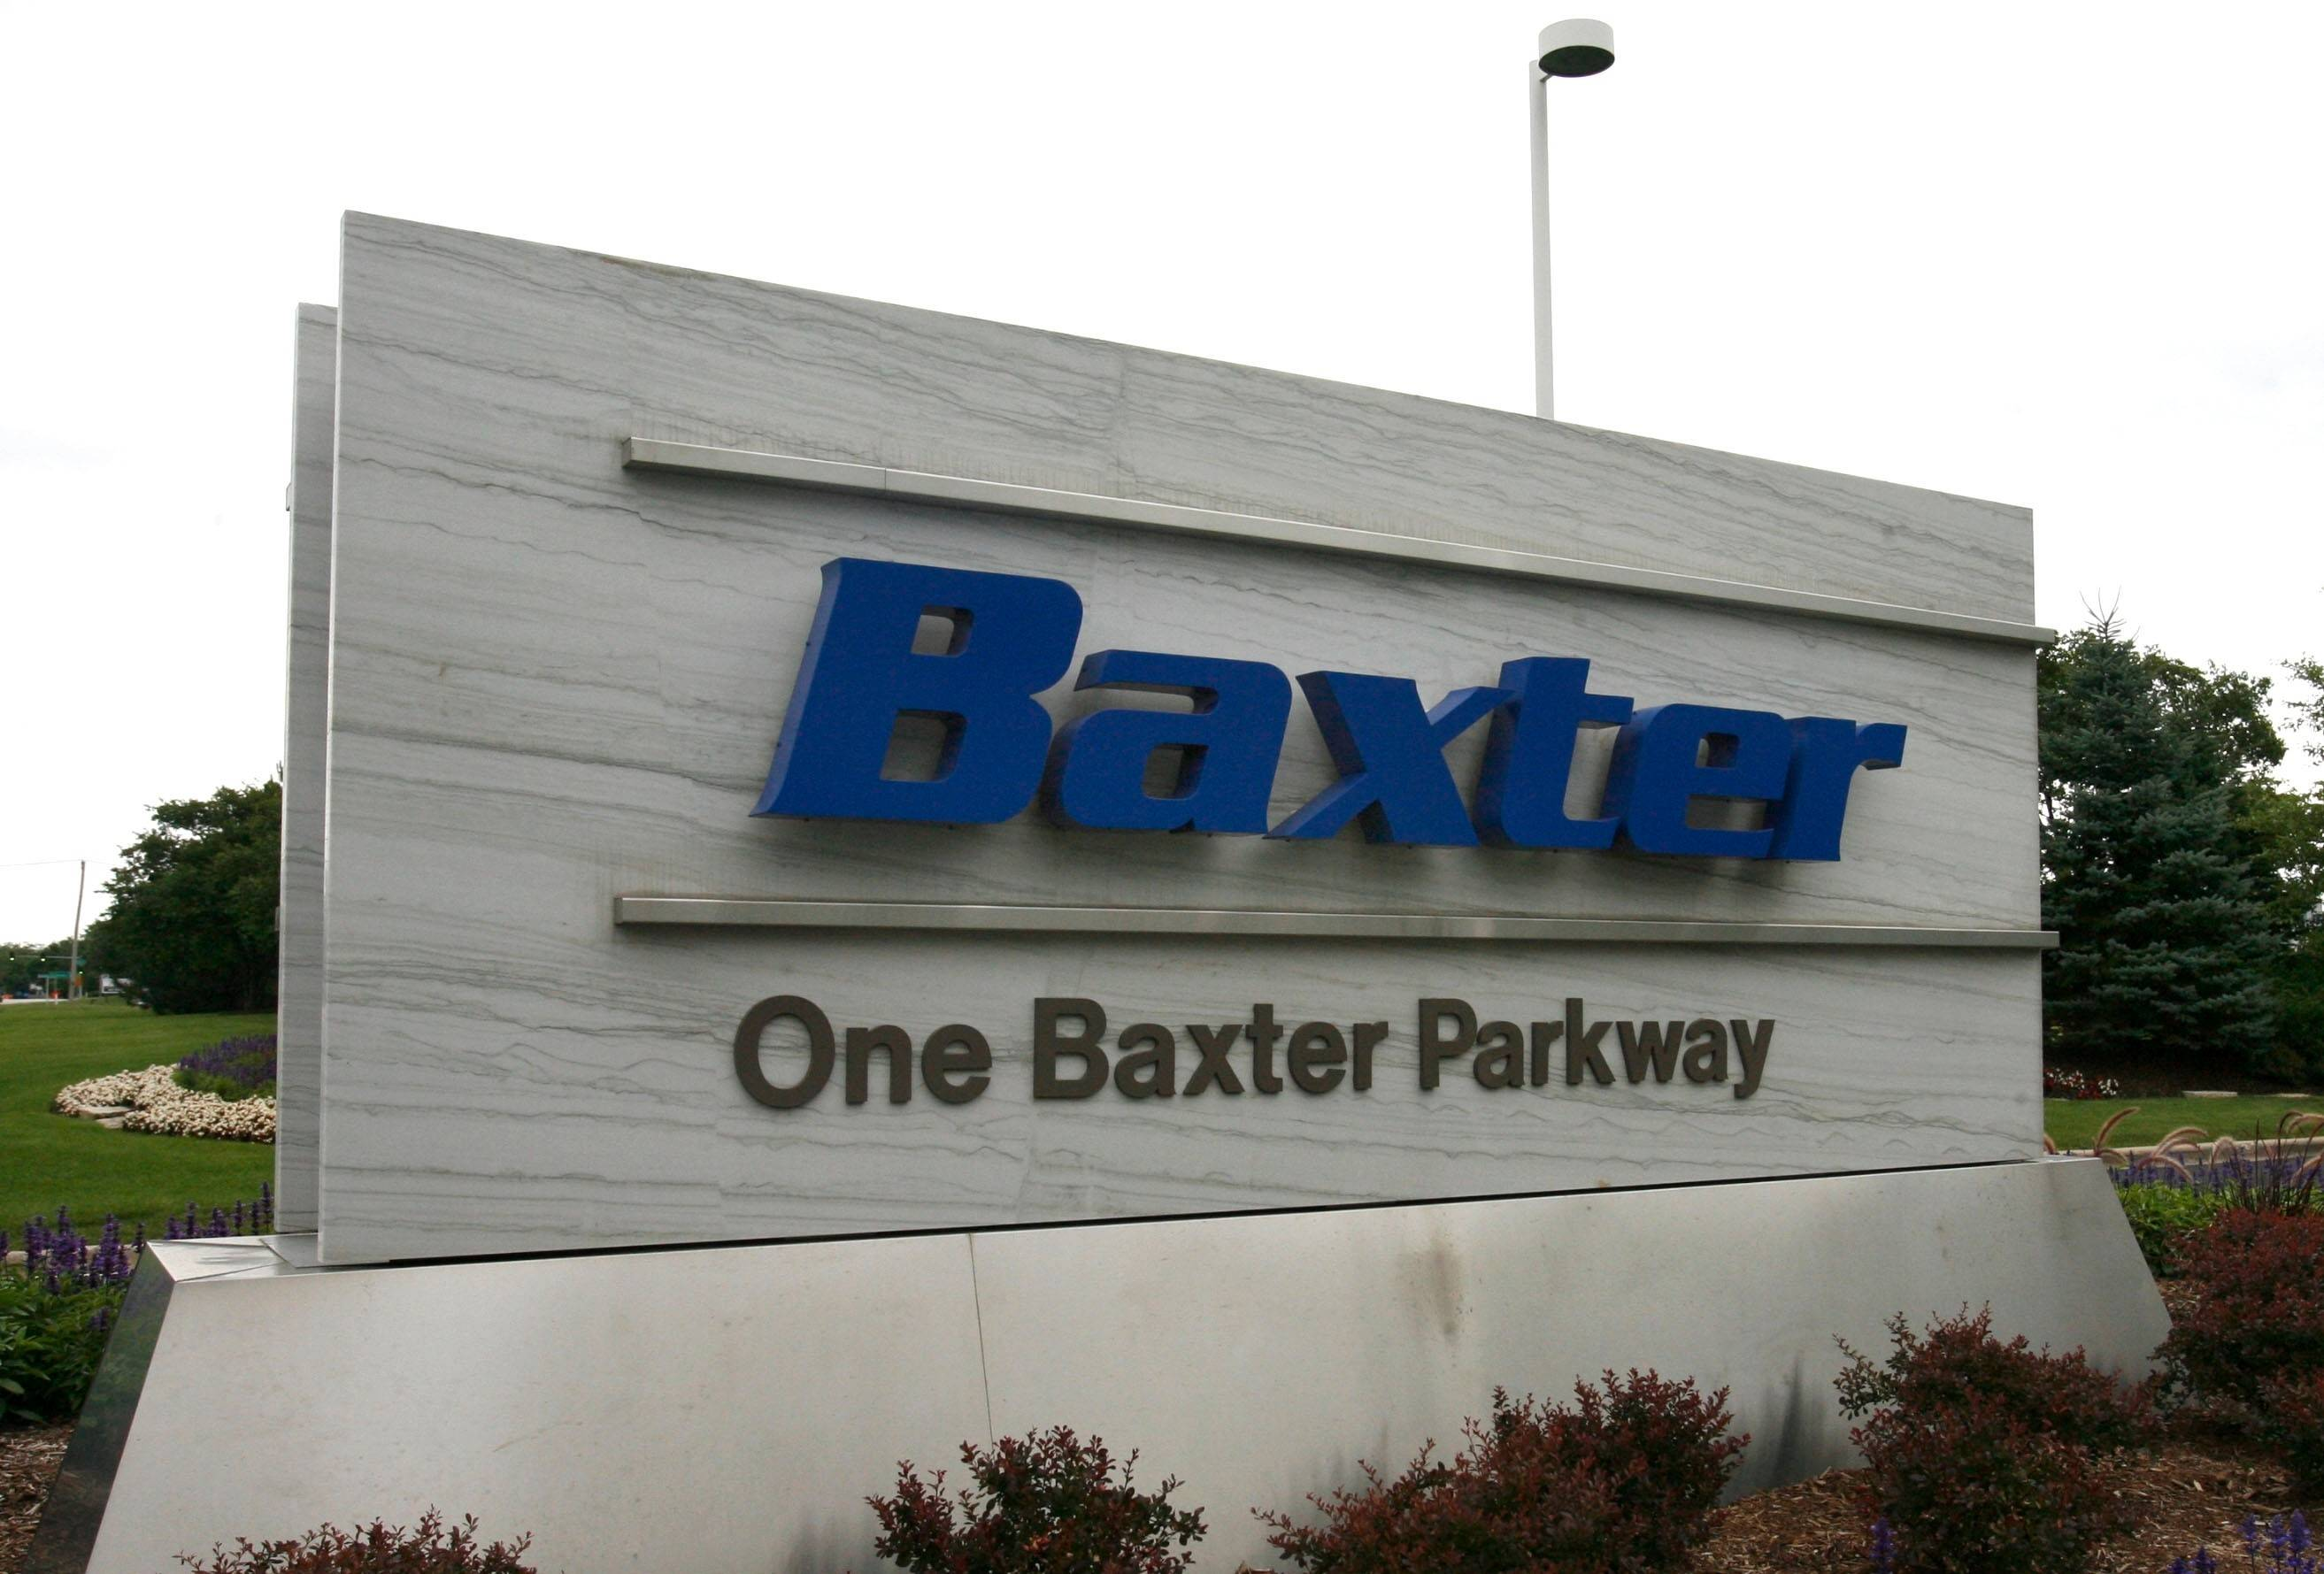 Deerfield-based Baxter International beat analysts' second-quarter earnings estimates and raised its 2016 guidance after what it said was a strong first half of the year.